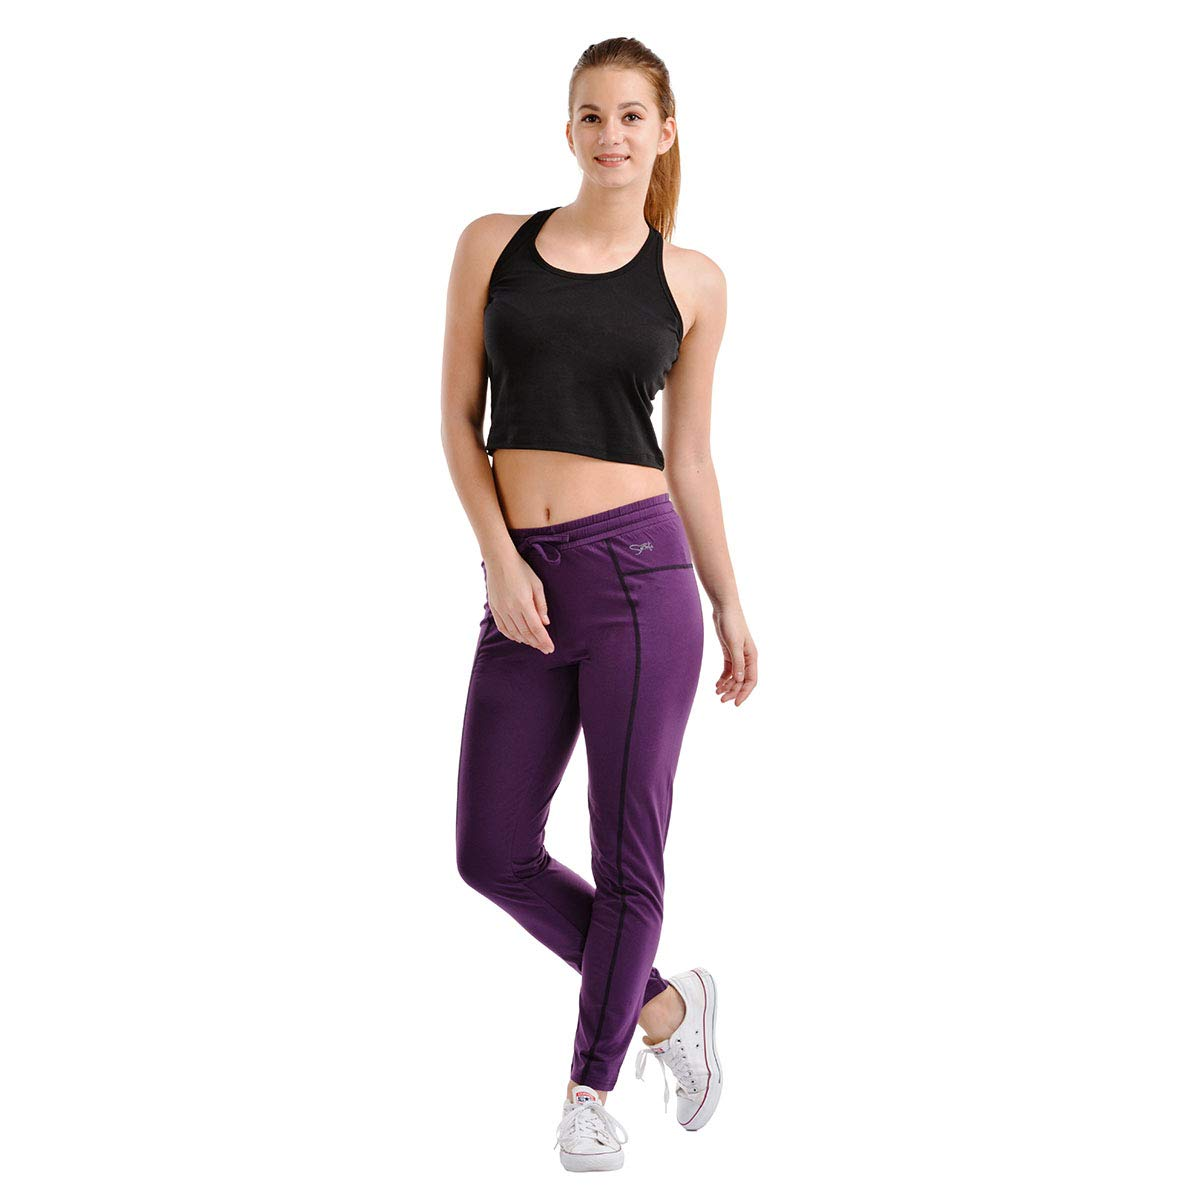 930822de8c5 Lovable Women Girls Micro Fabric Track Pant Solid in Purple - Trifit  Equinox Track PU  Amazon.in  Clothing   Accessories